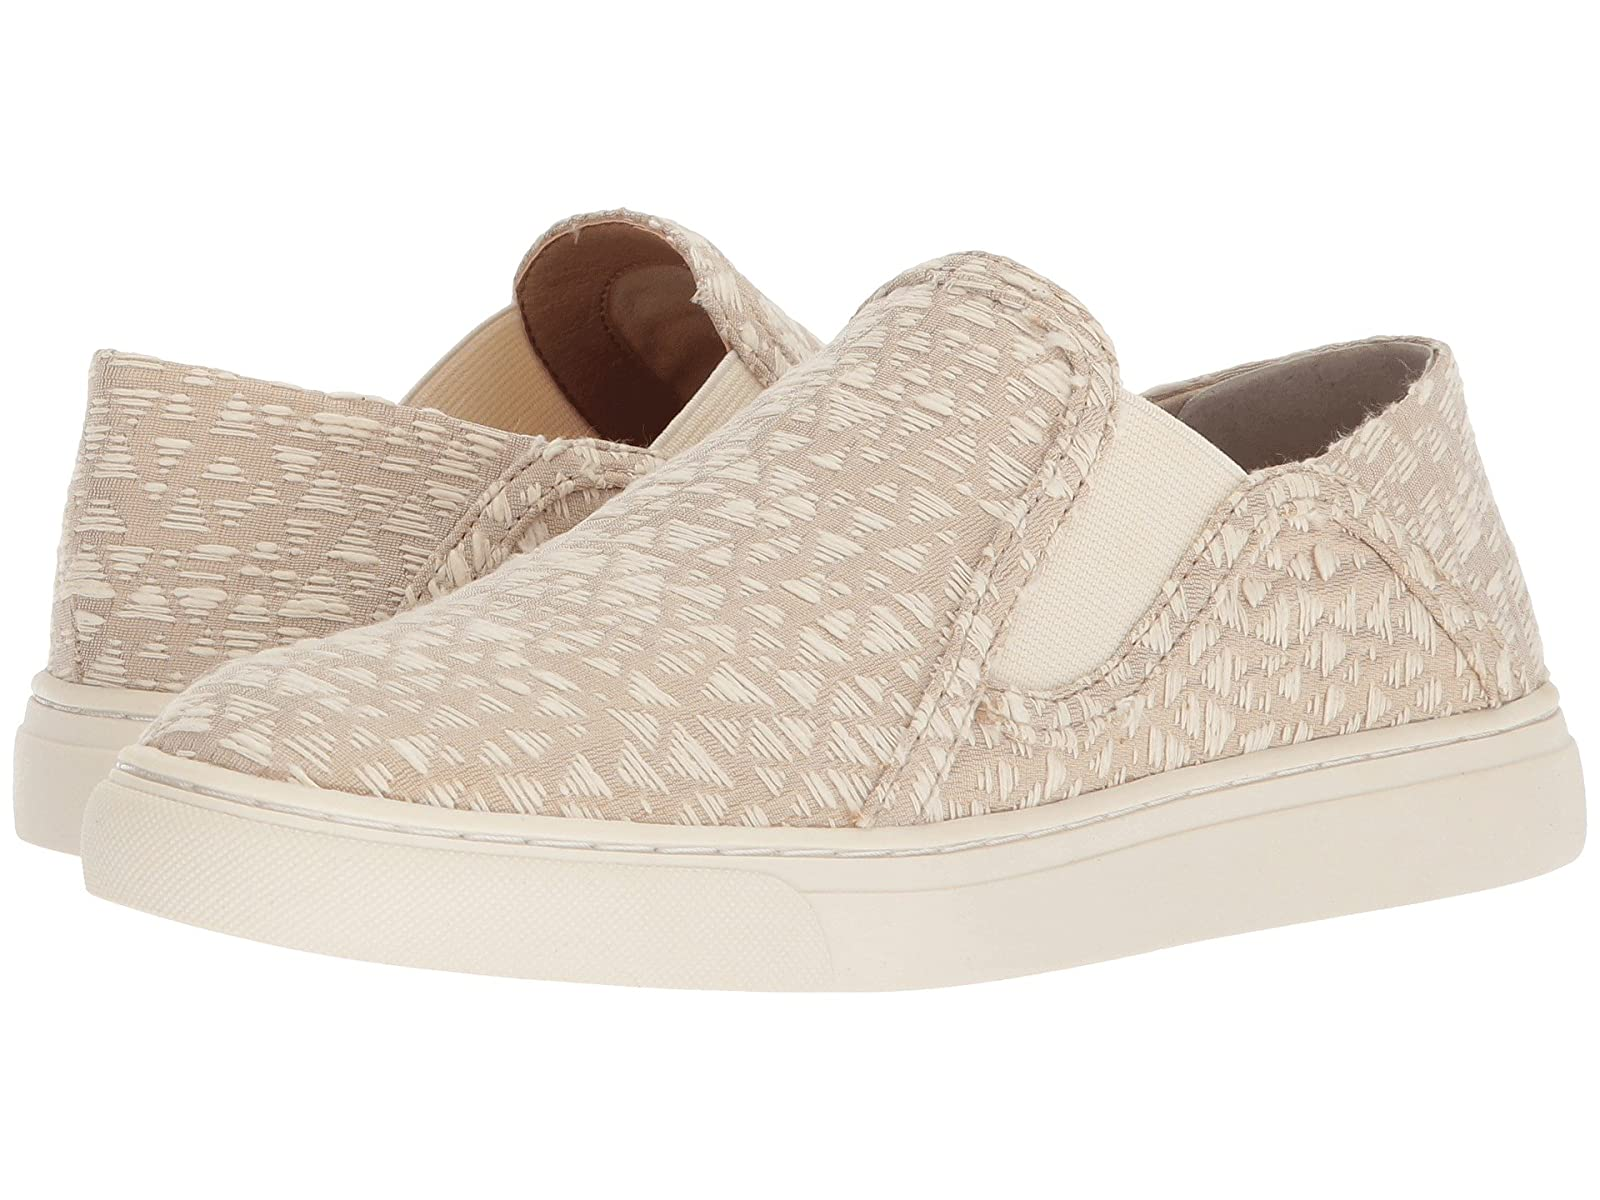 Lucky Brand LailomCheap and distinctive eye-catching shoes